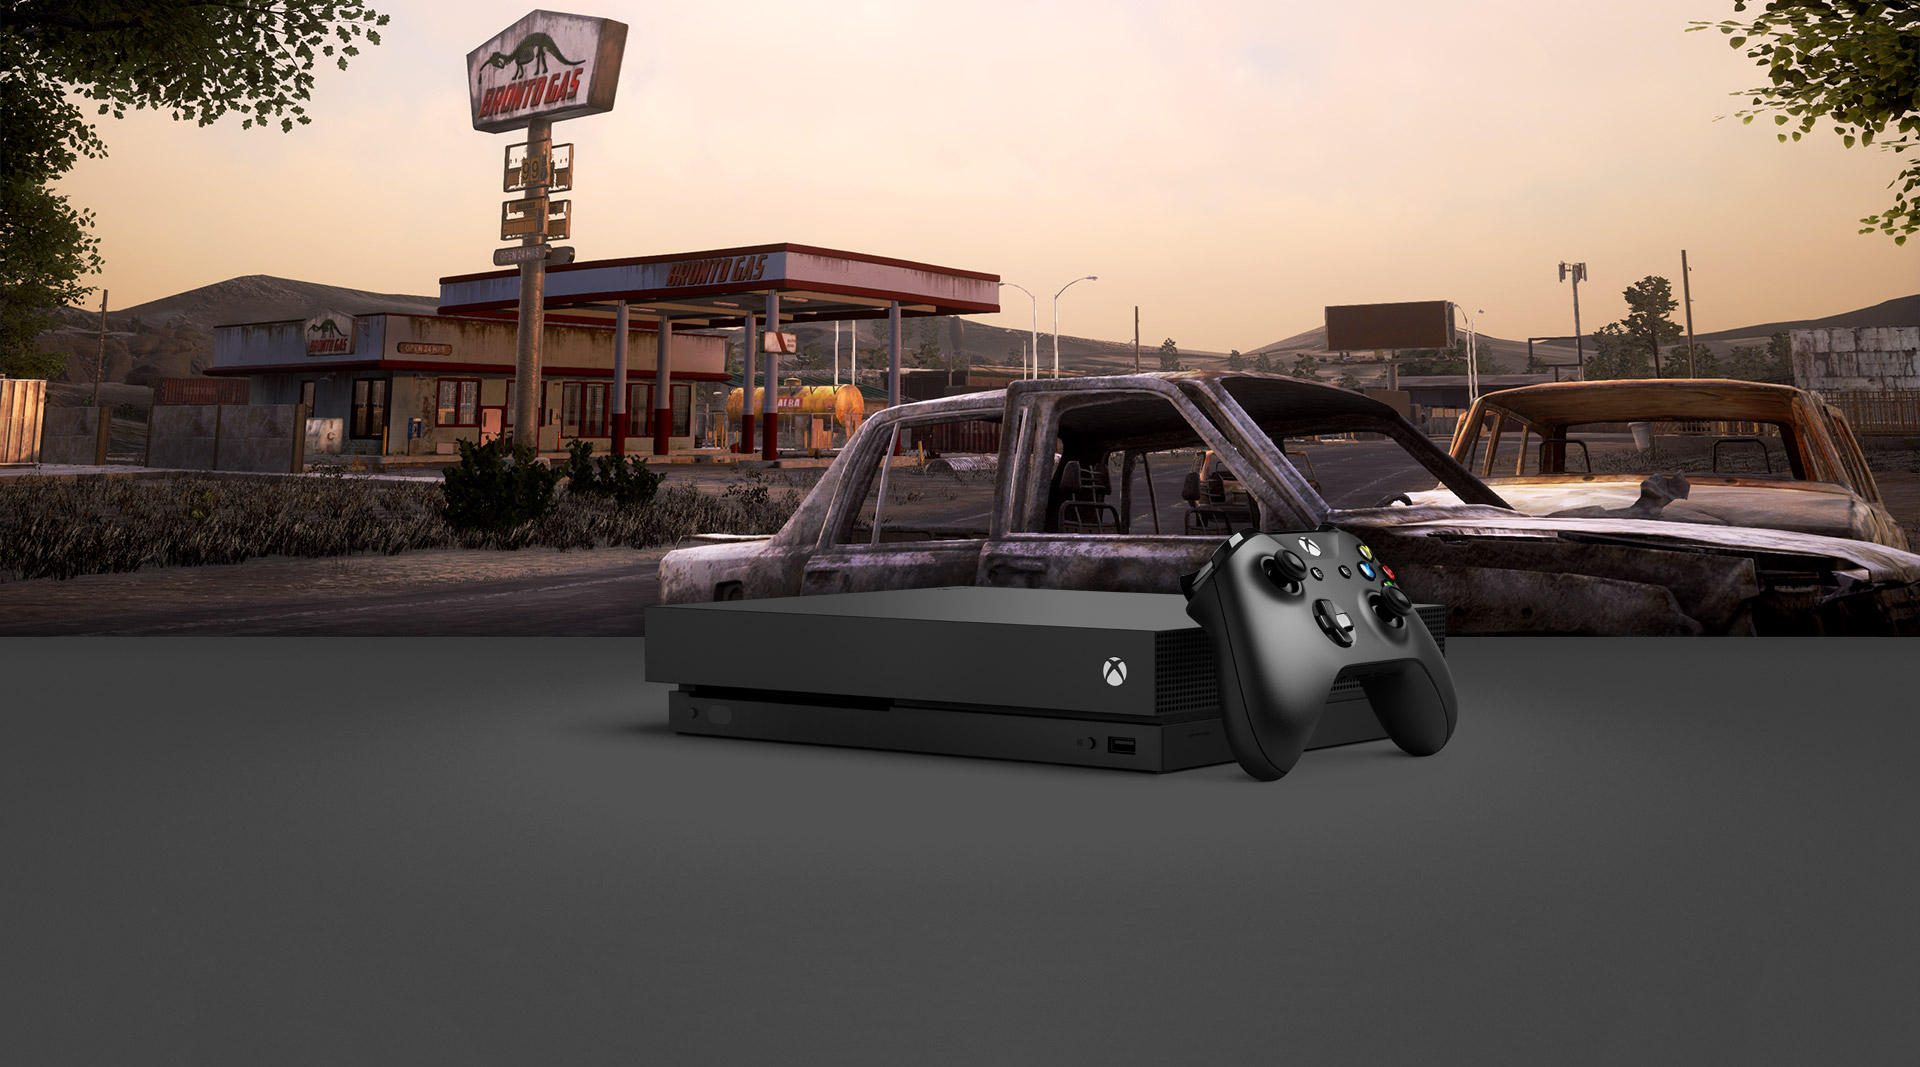 Dramatic scene of abandoned petrol station, with two abandoned cars at sunrise, featuring Xbox One X